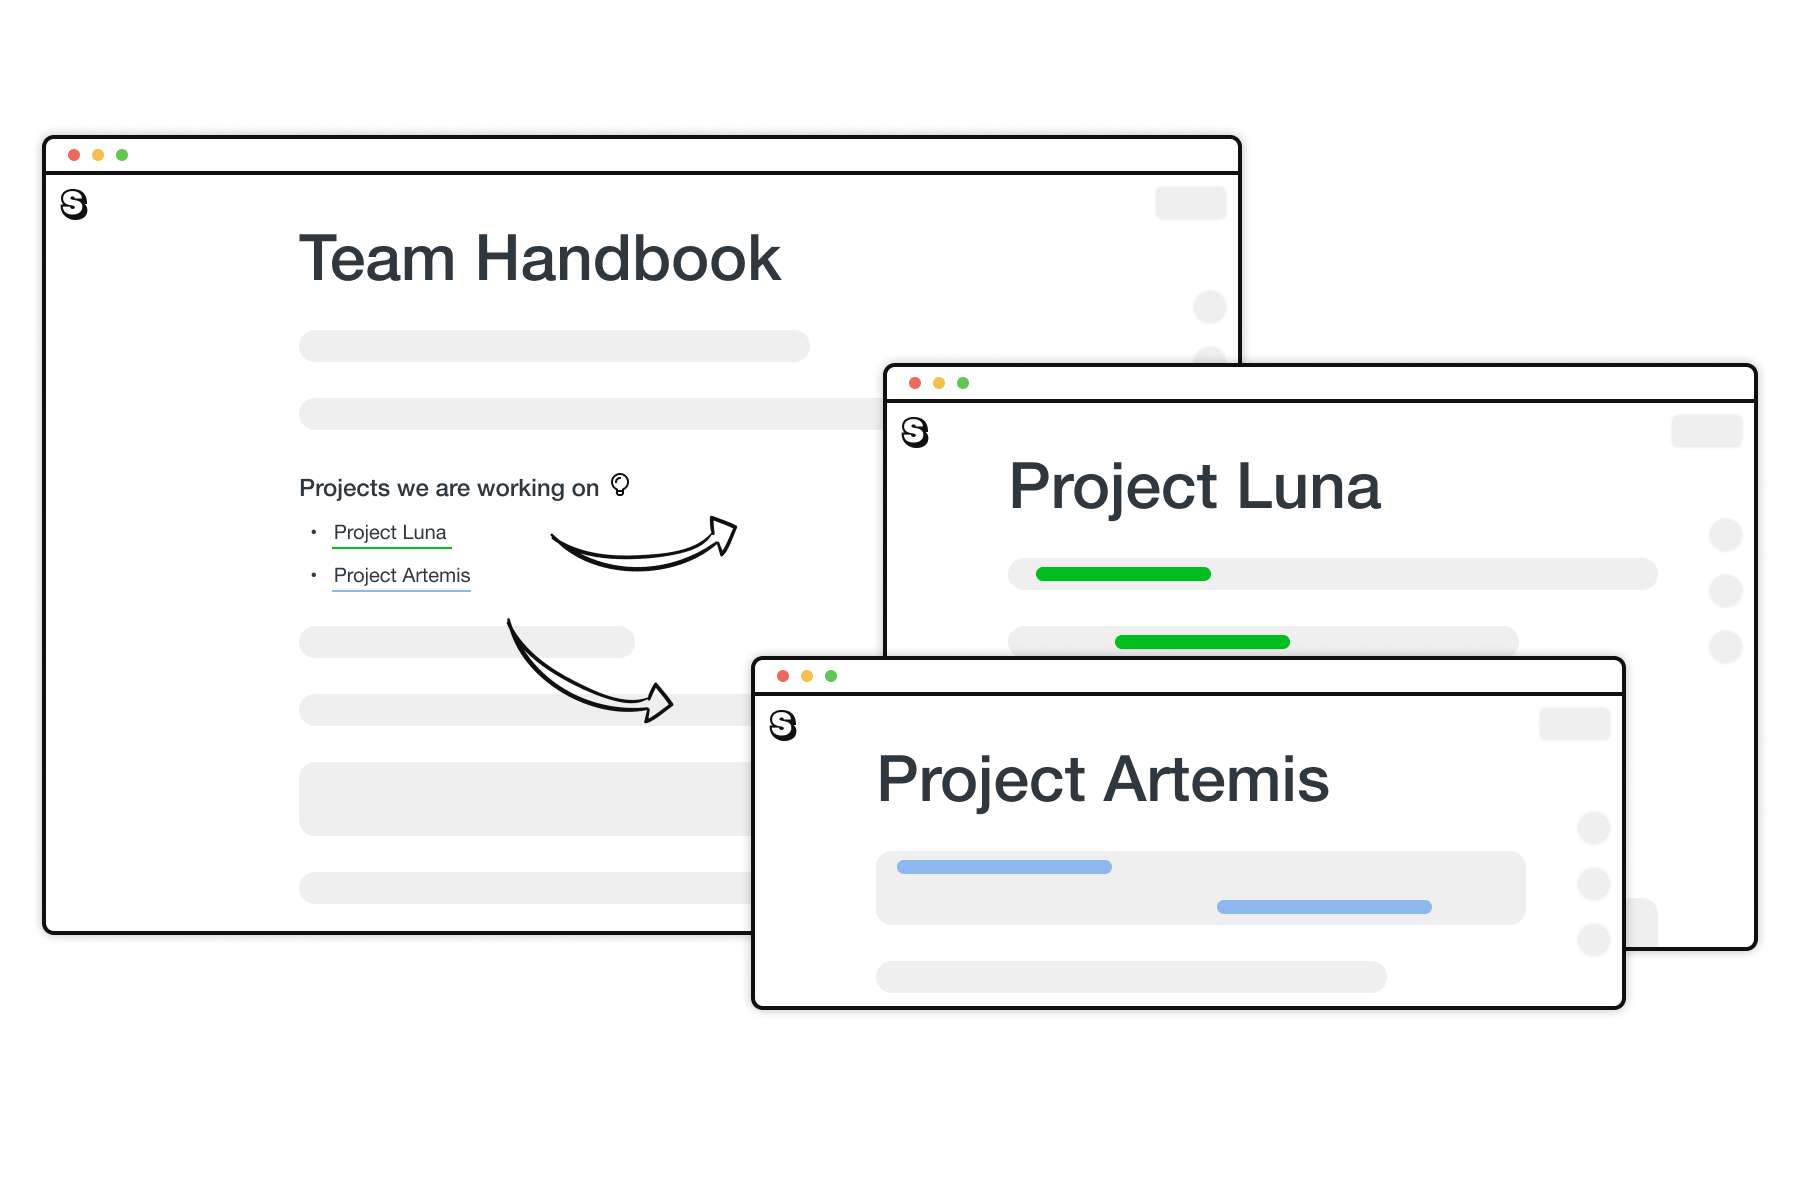 An illustration showing how autolinking and instant linking in Saga works. A page in Saga titled Team handbook contains links to pages titled Project Artemis and Project Luna.